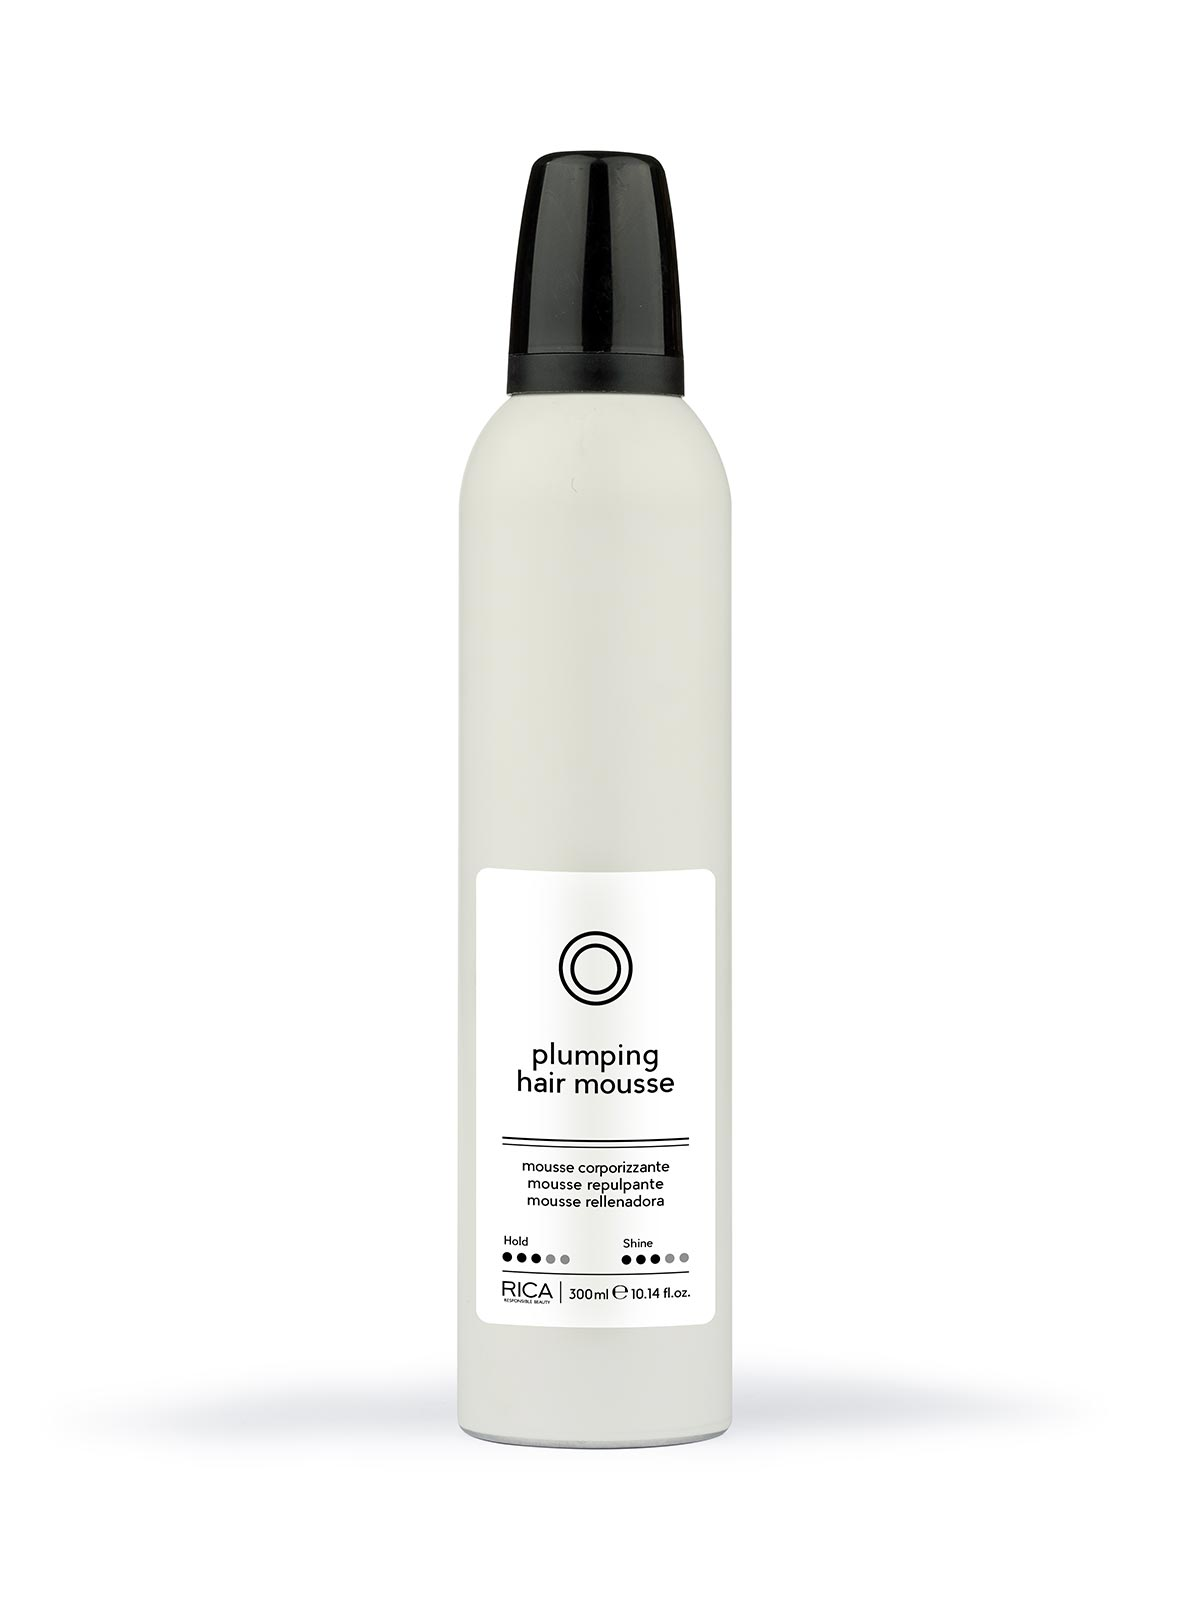 Rica Plumping Hair Mousse